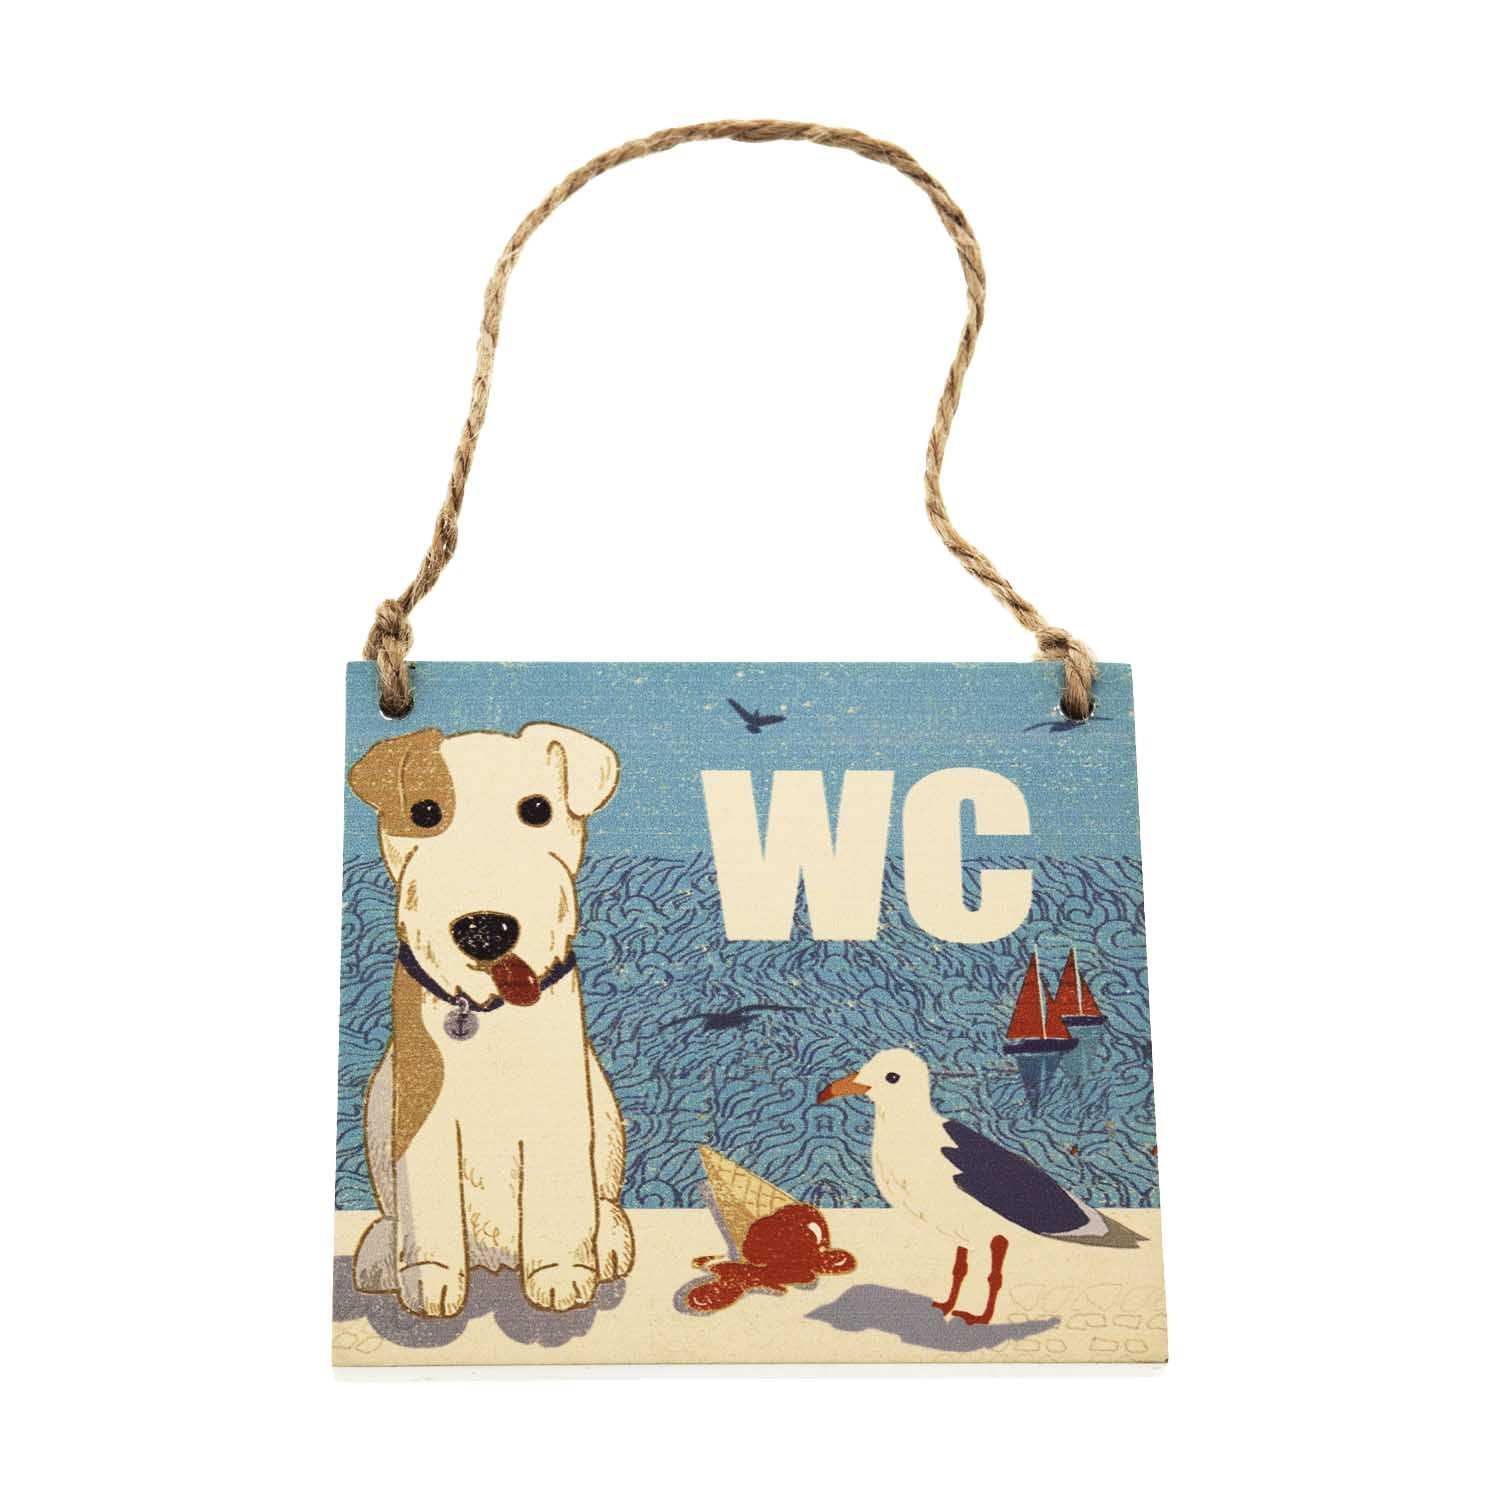 Dog Lover Gifts available at Dog Krazy Gifts – Jill White Rocket68 Ahoy WC Sign available at www.dogkrazygifts.co.uk